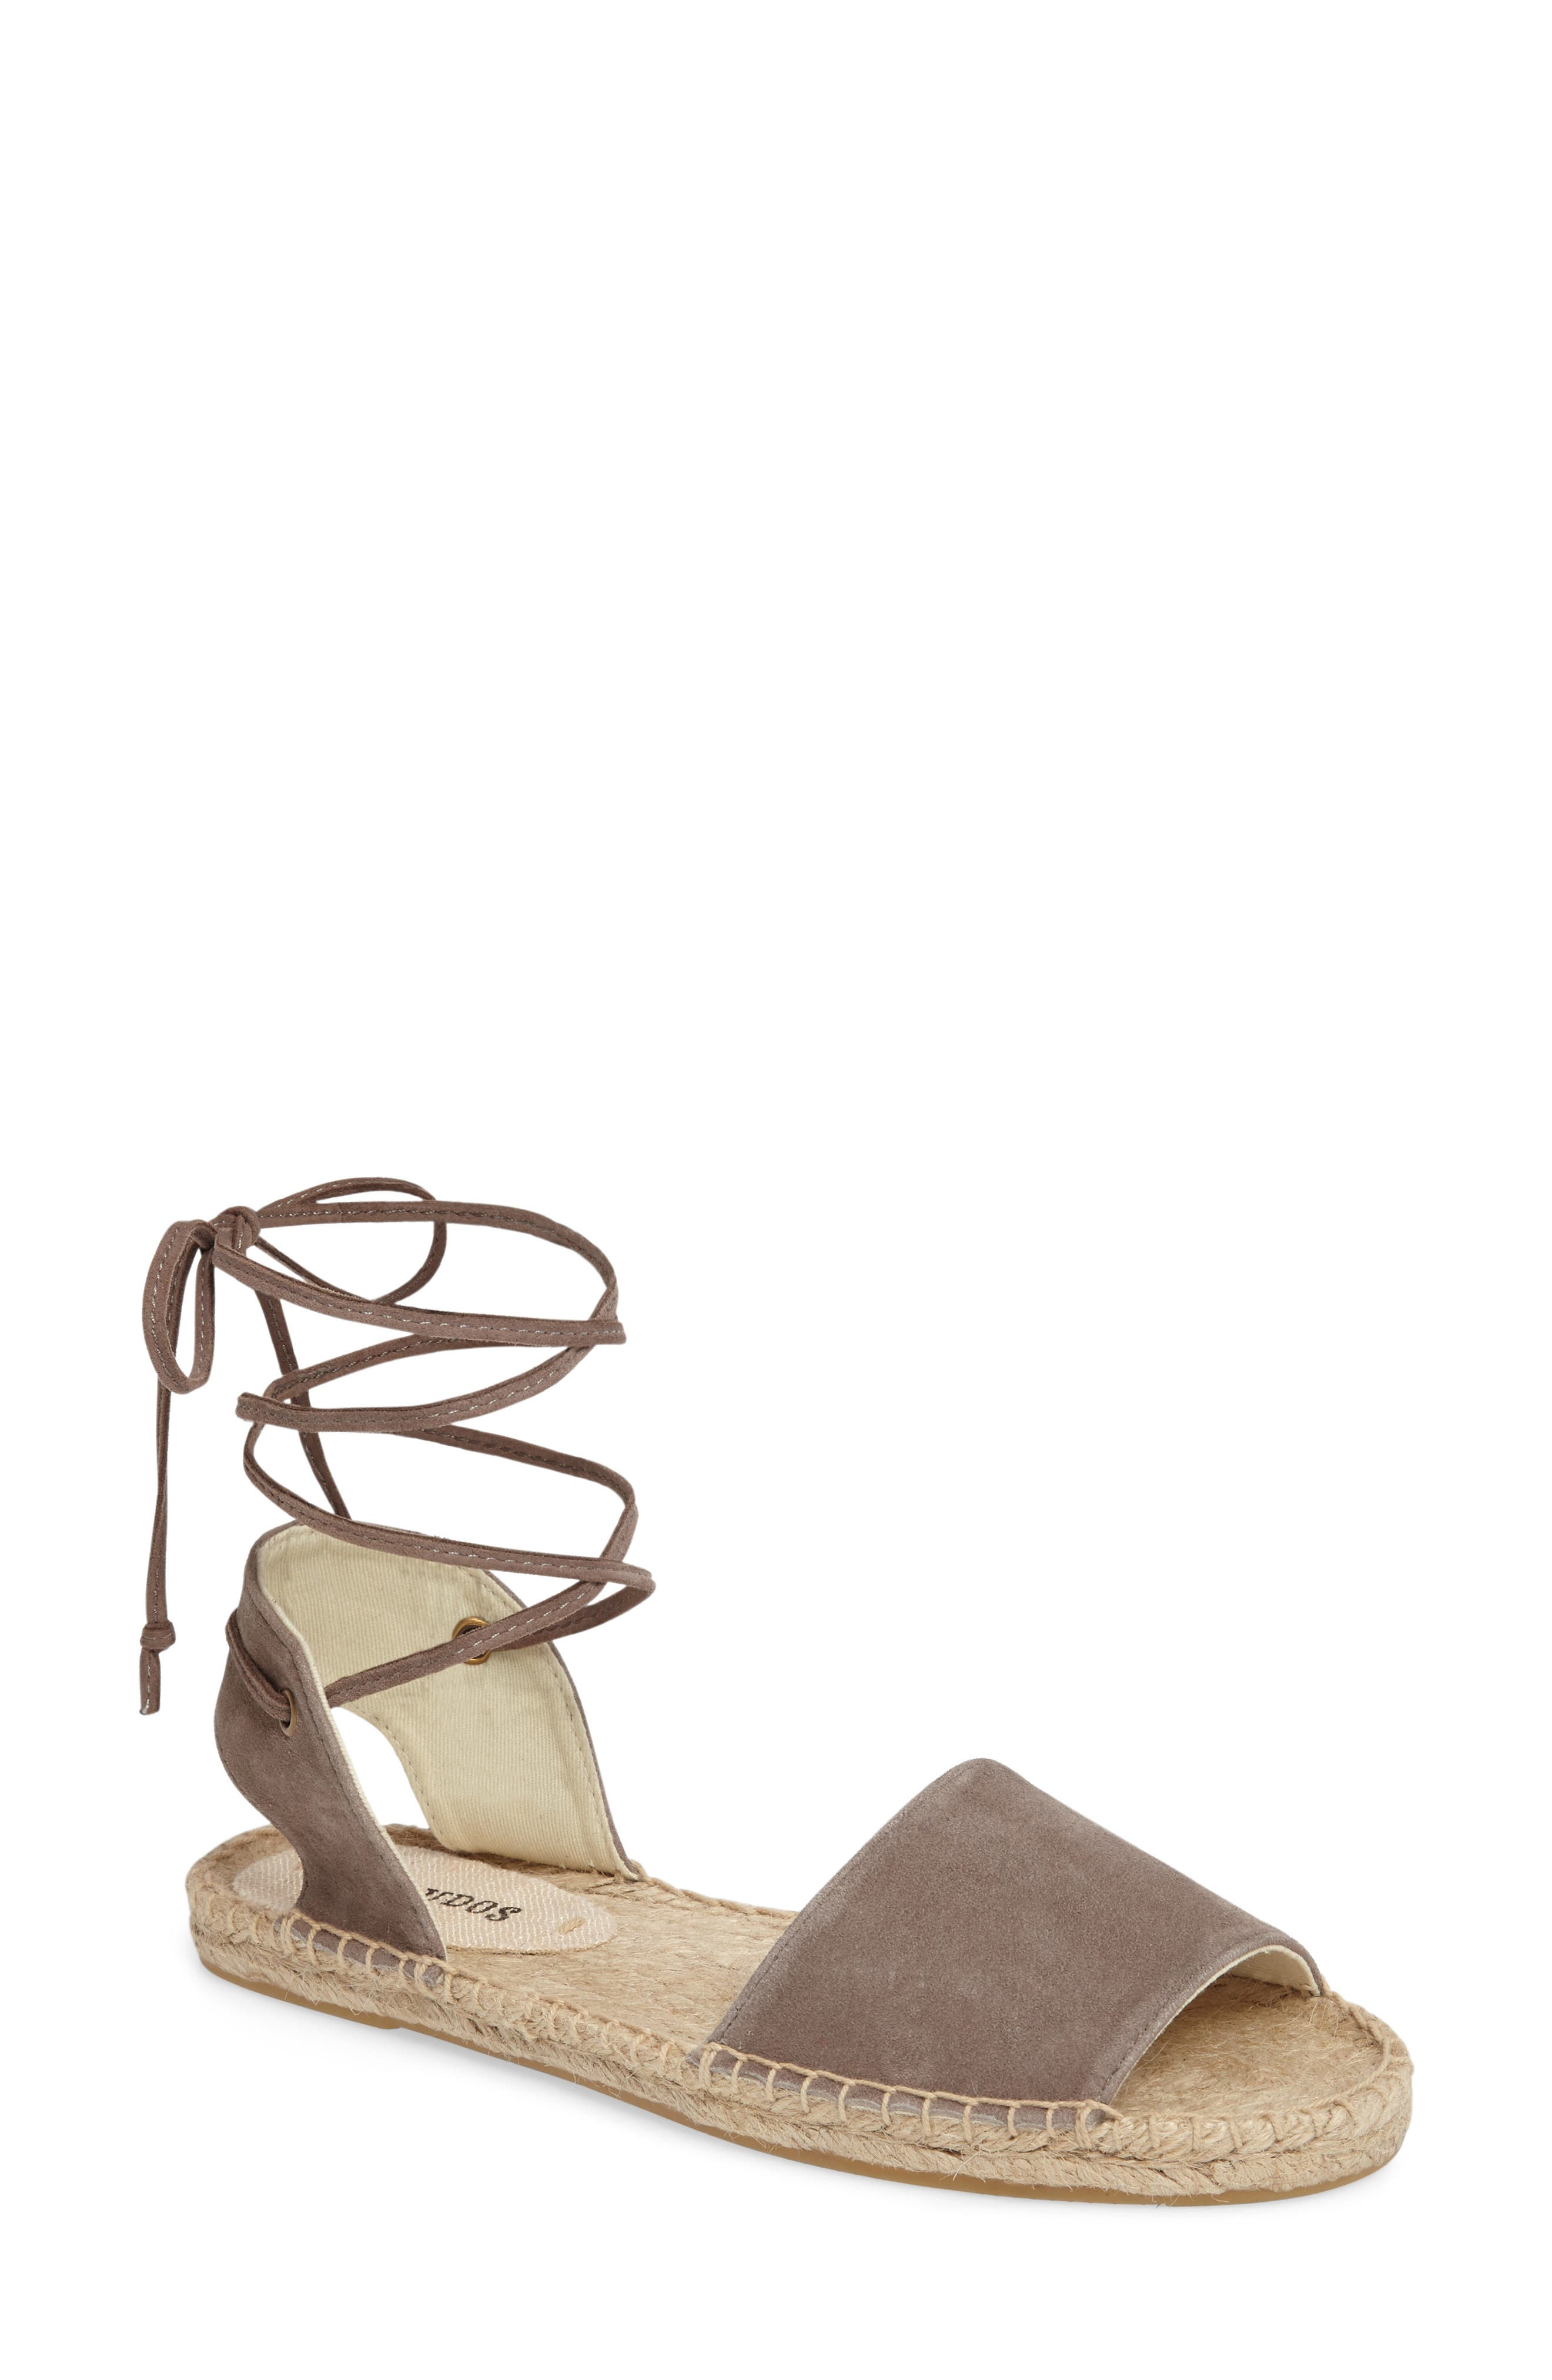 Alternate Image 1 Selected - Soludos Lace-Up Sandal (Women)